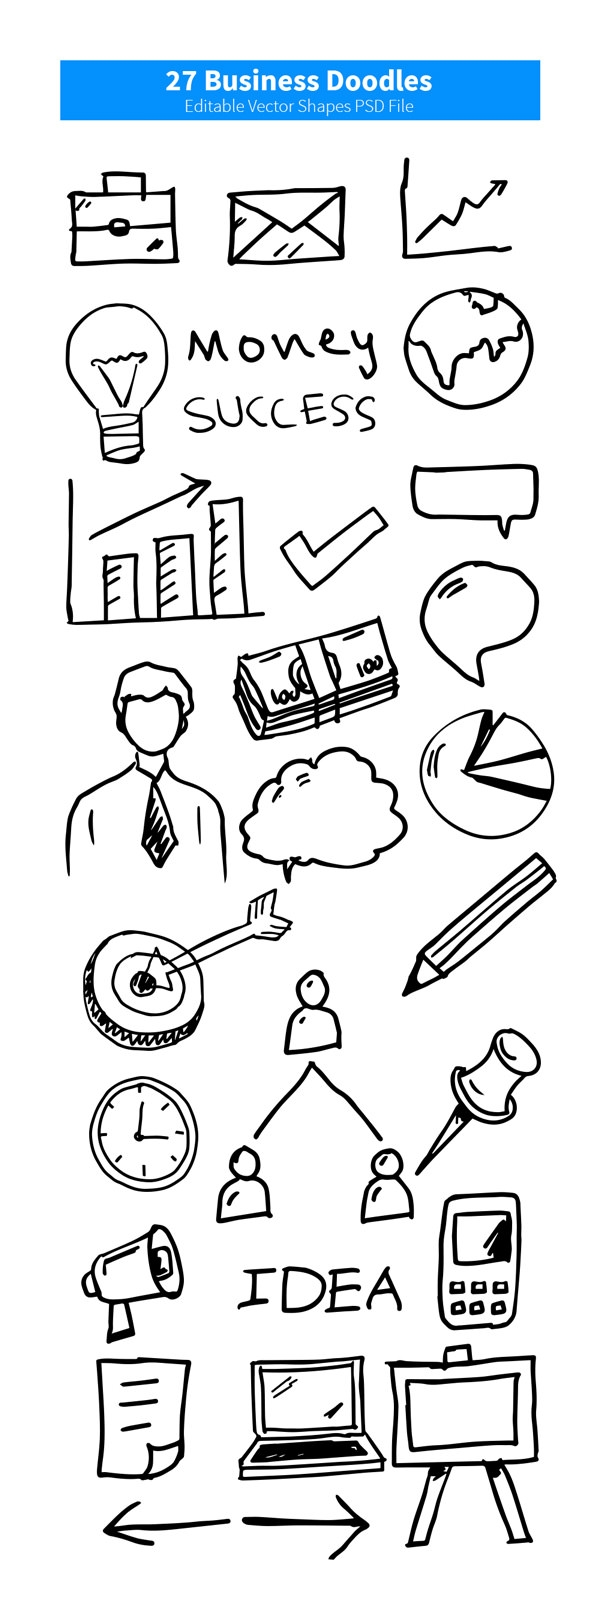 business-doodles-vector-shapes